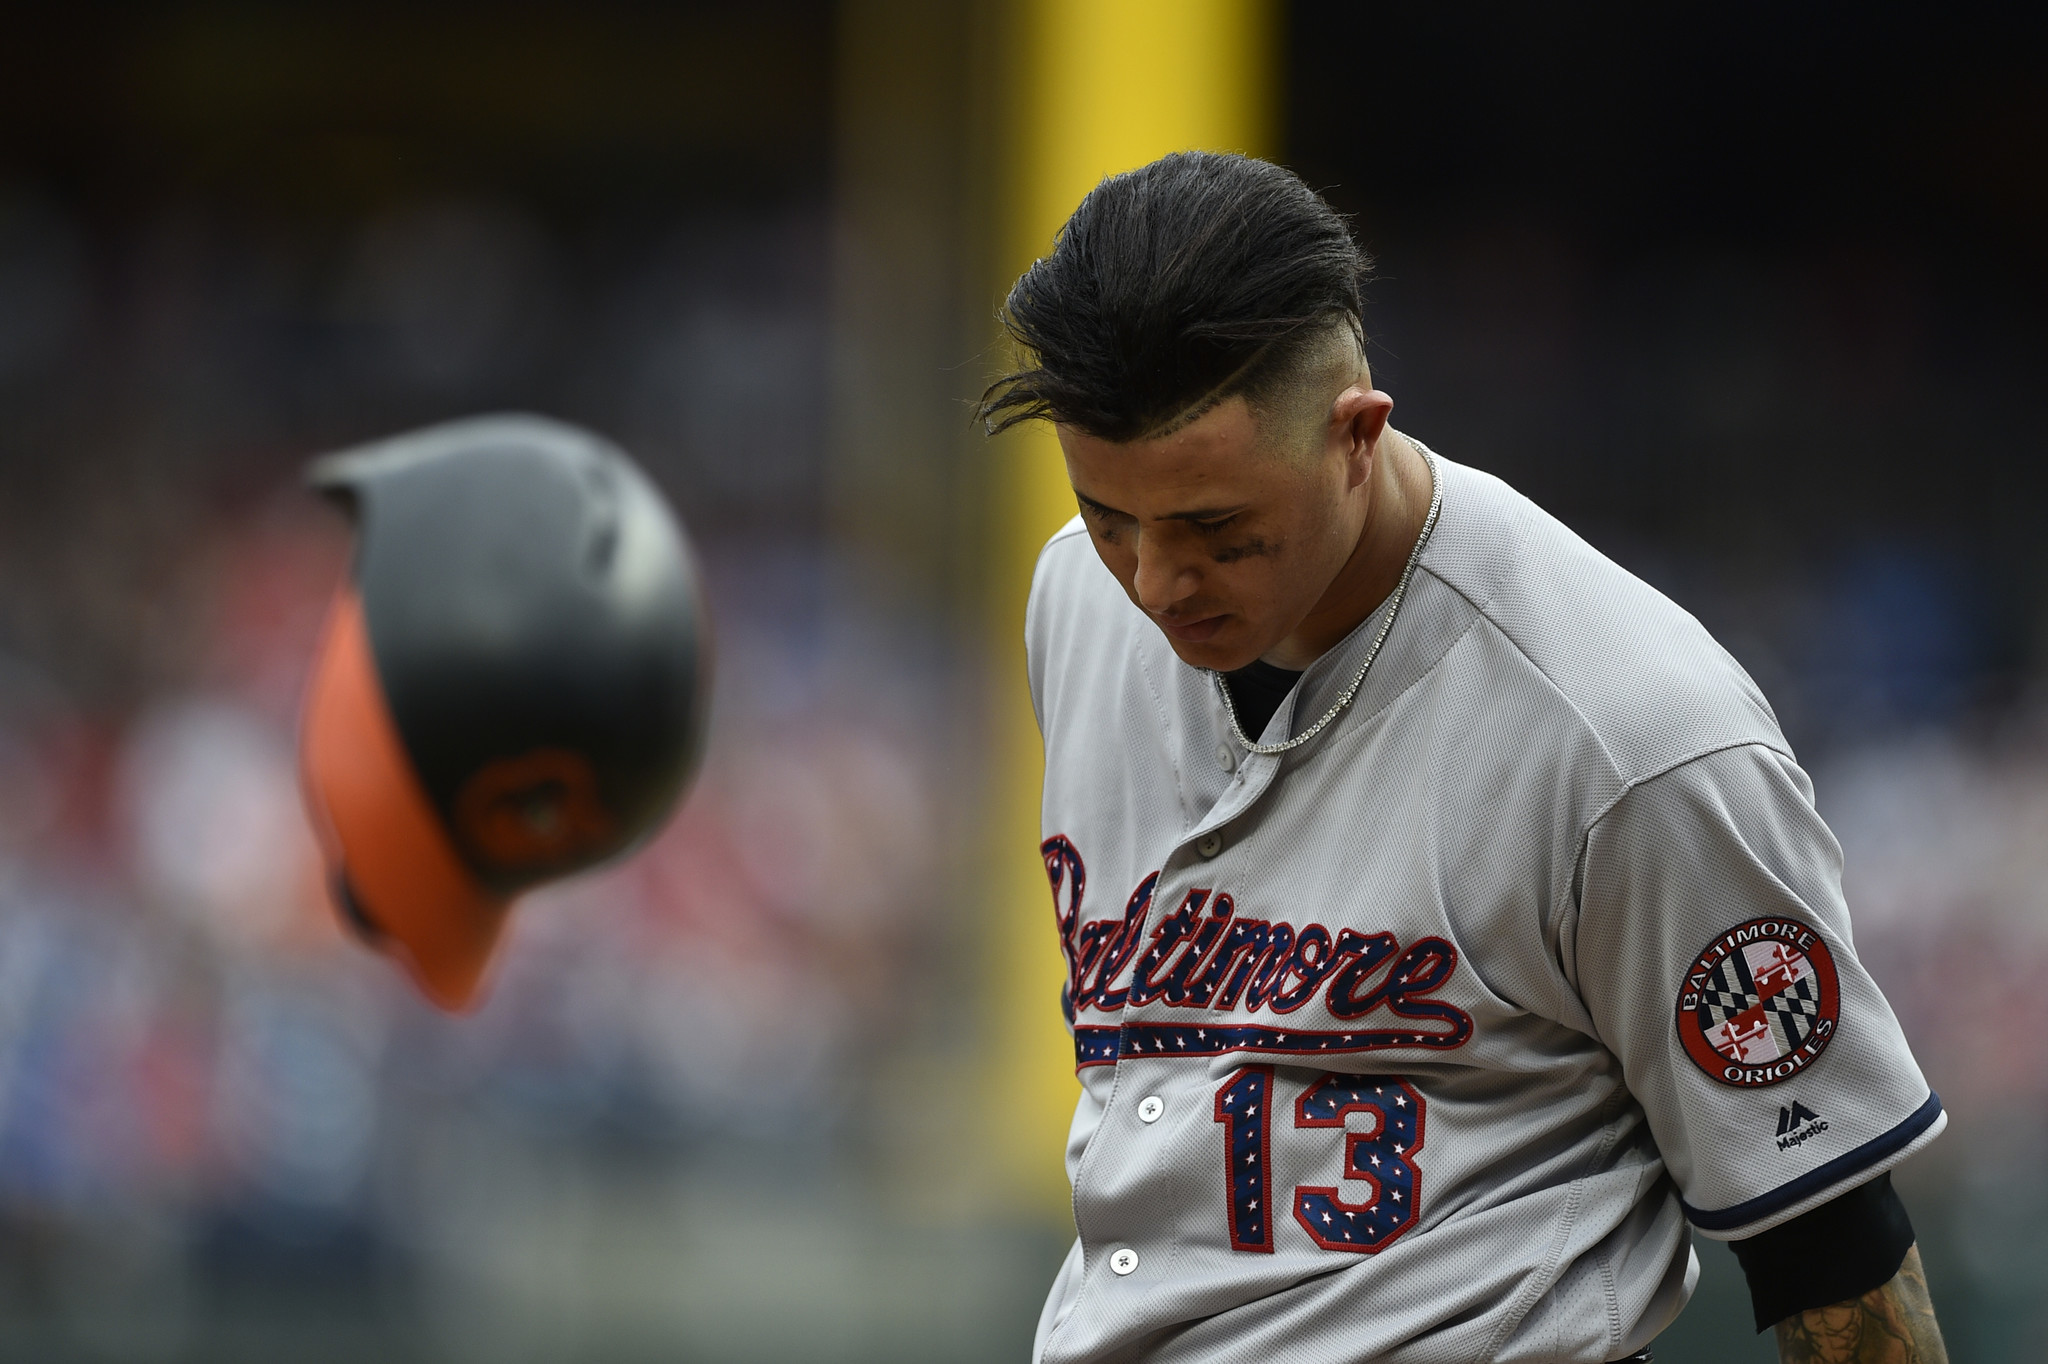 Bal-orioles-rewind-looking-back-at-wednesday-s-4-1-loss-to-the-phillies-20180704